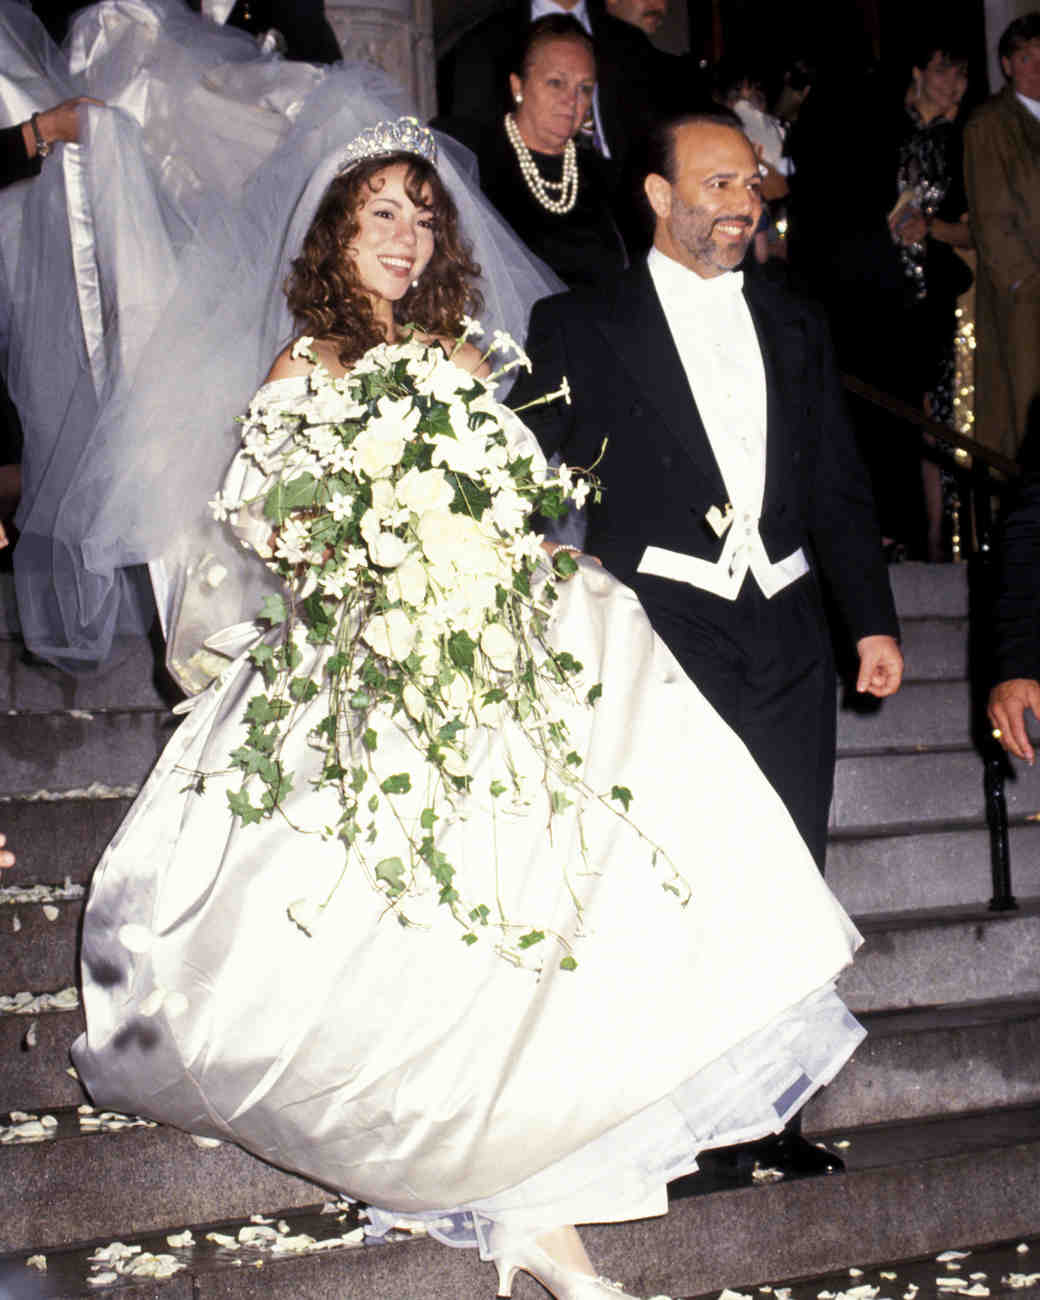 Mariah Carey and Tommy Mottola Wedding Photo